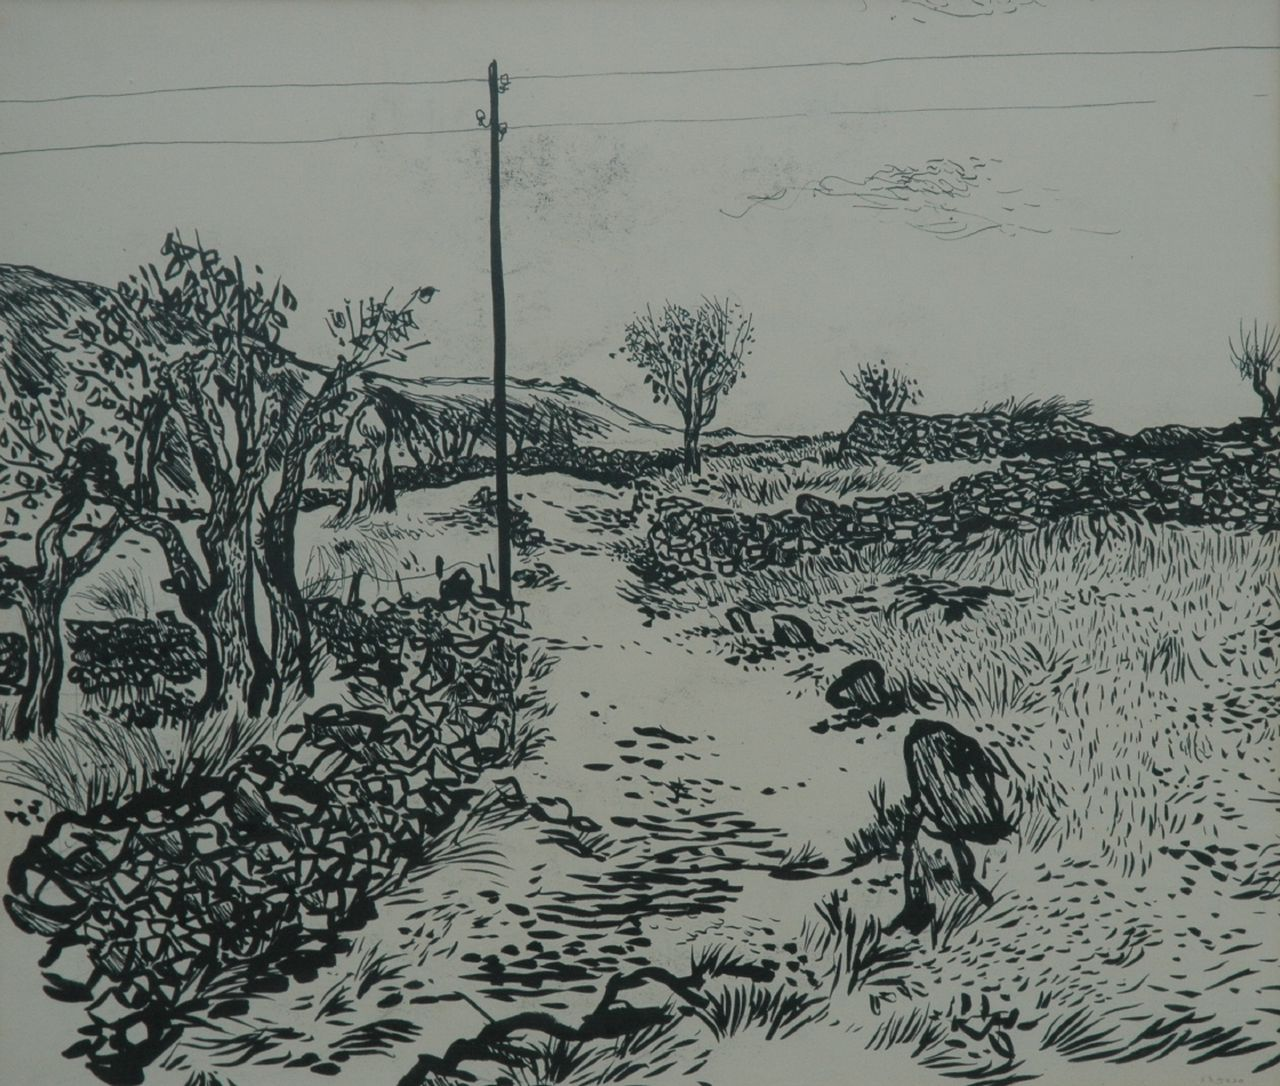 Thijs Overmans | A landscape, Indian ink on paper, 50.3 x 61.0 cm